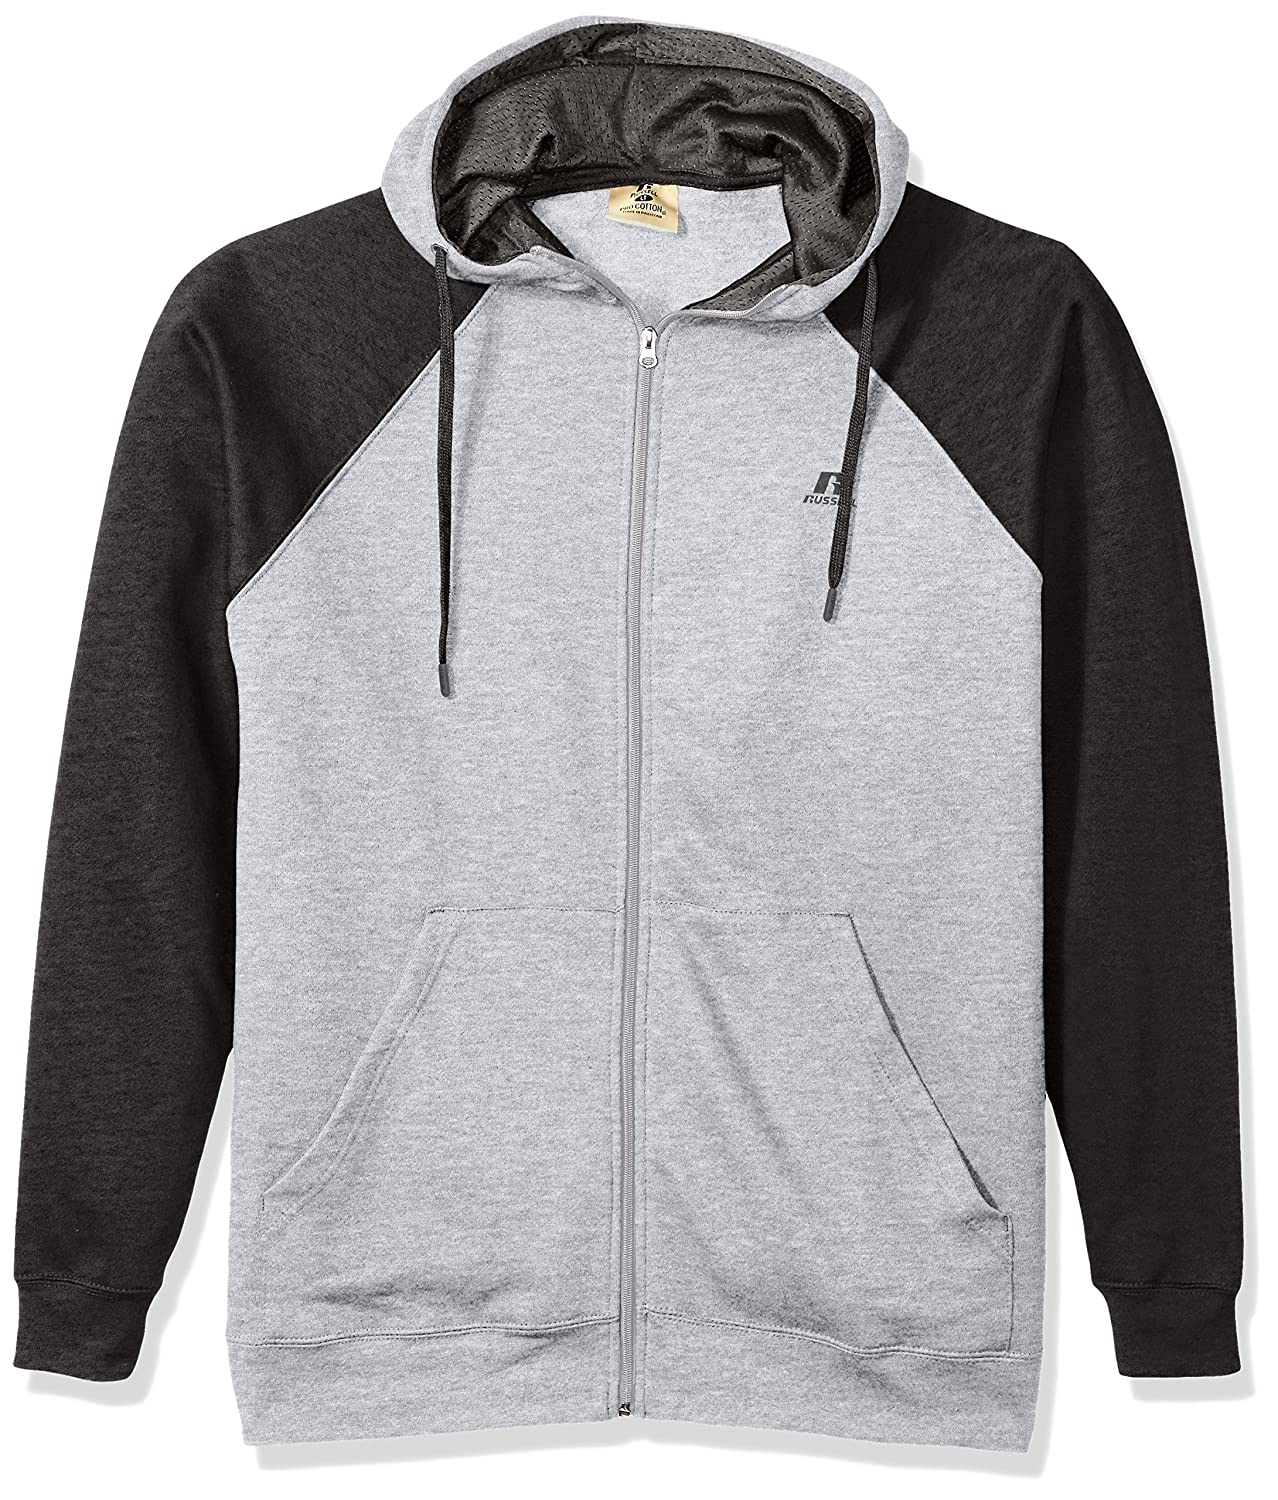 Russell Athletic Mens Big and Tall Full Zip Raglan Hood with Drawstring